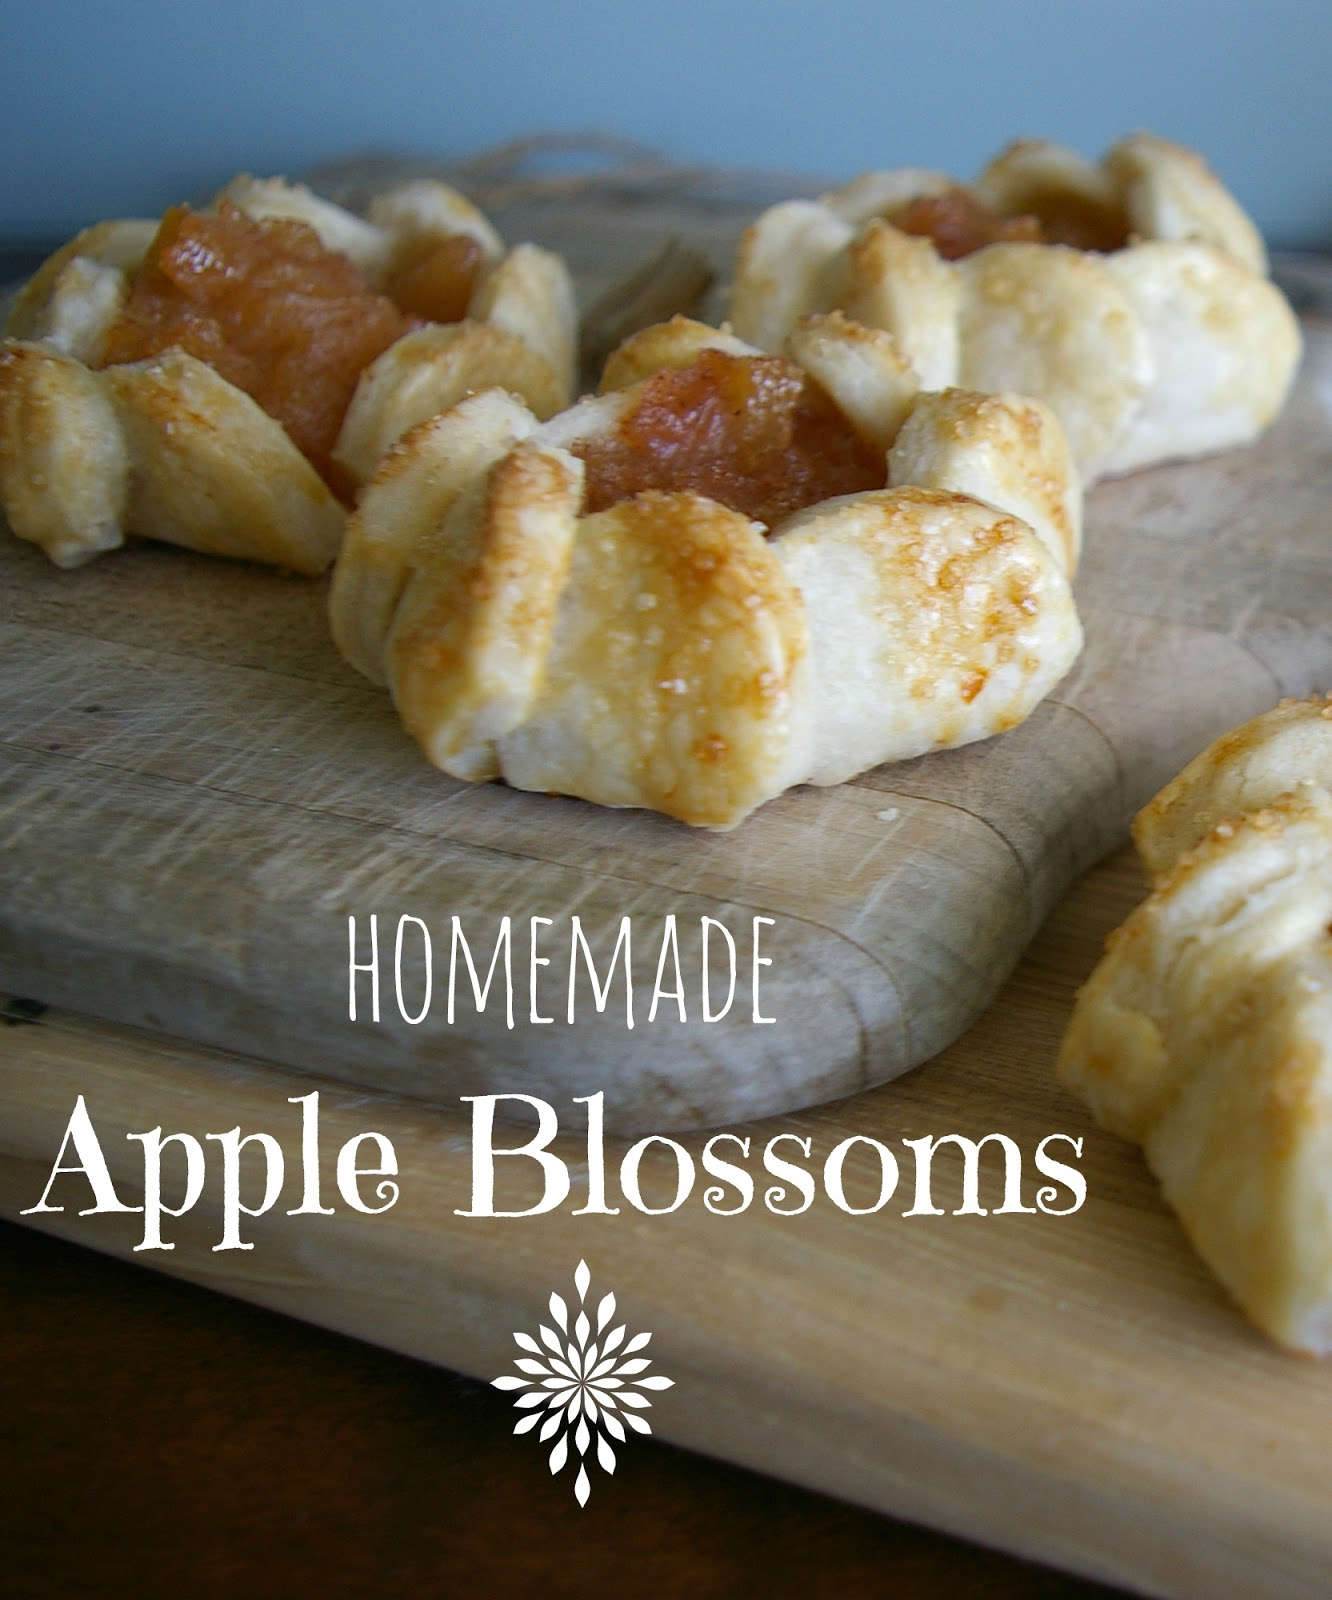 Apple Blossom Recipe